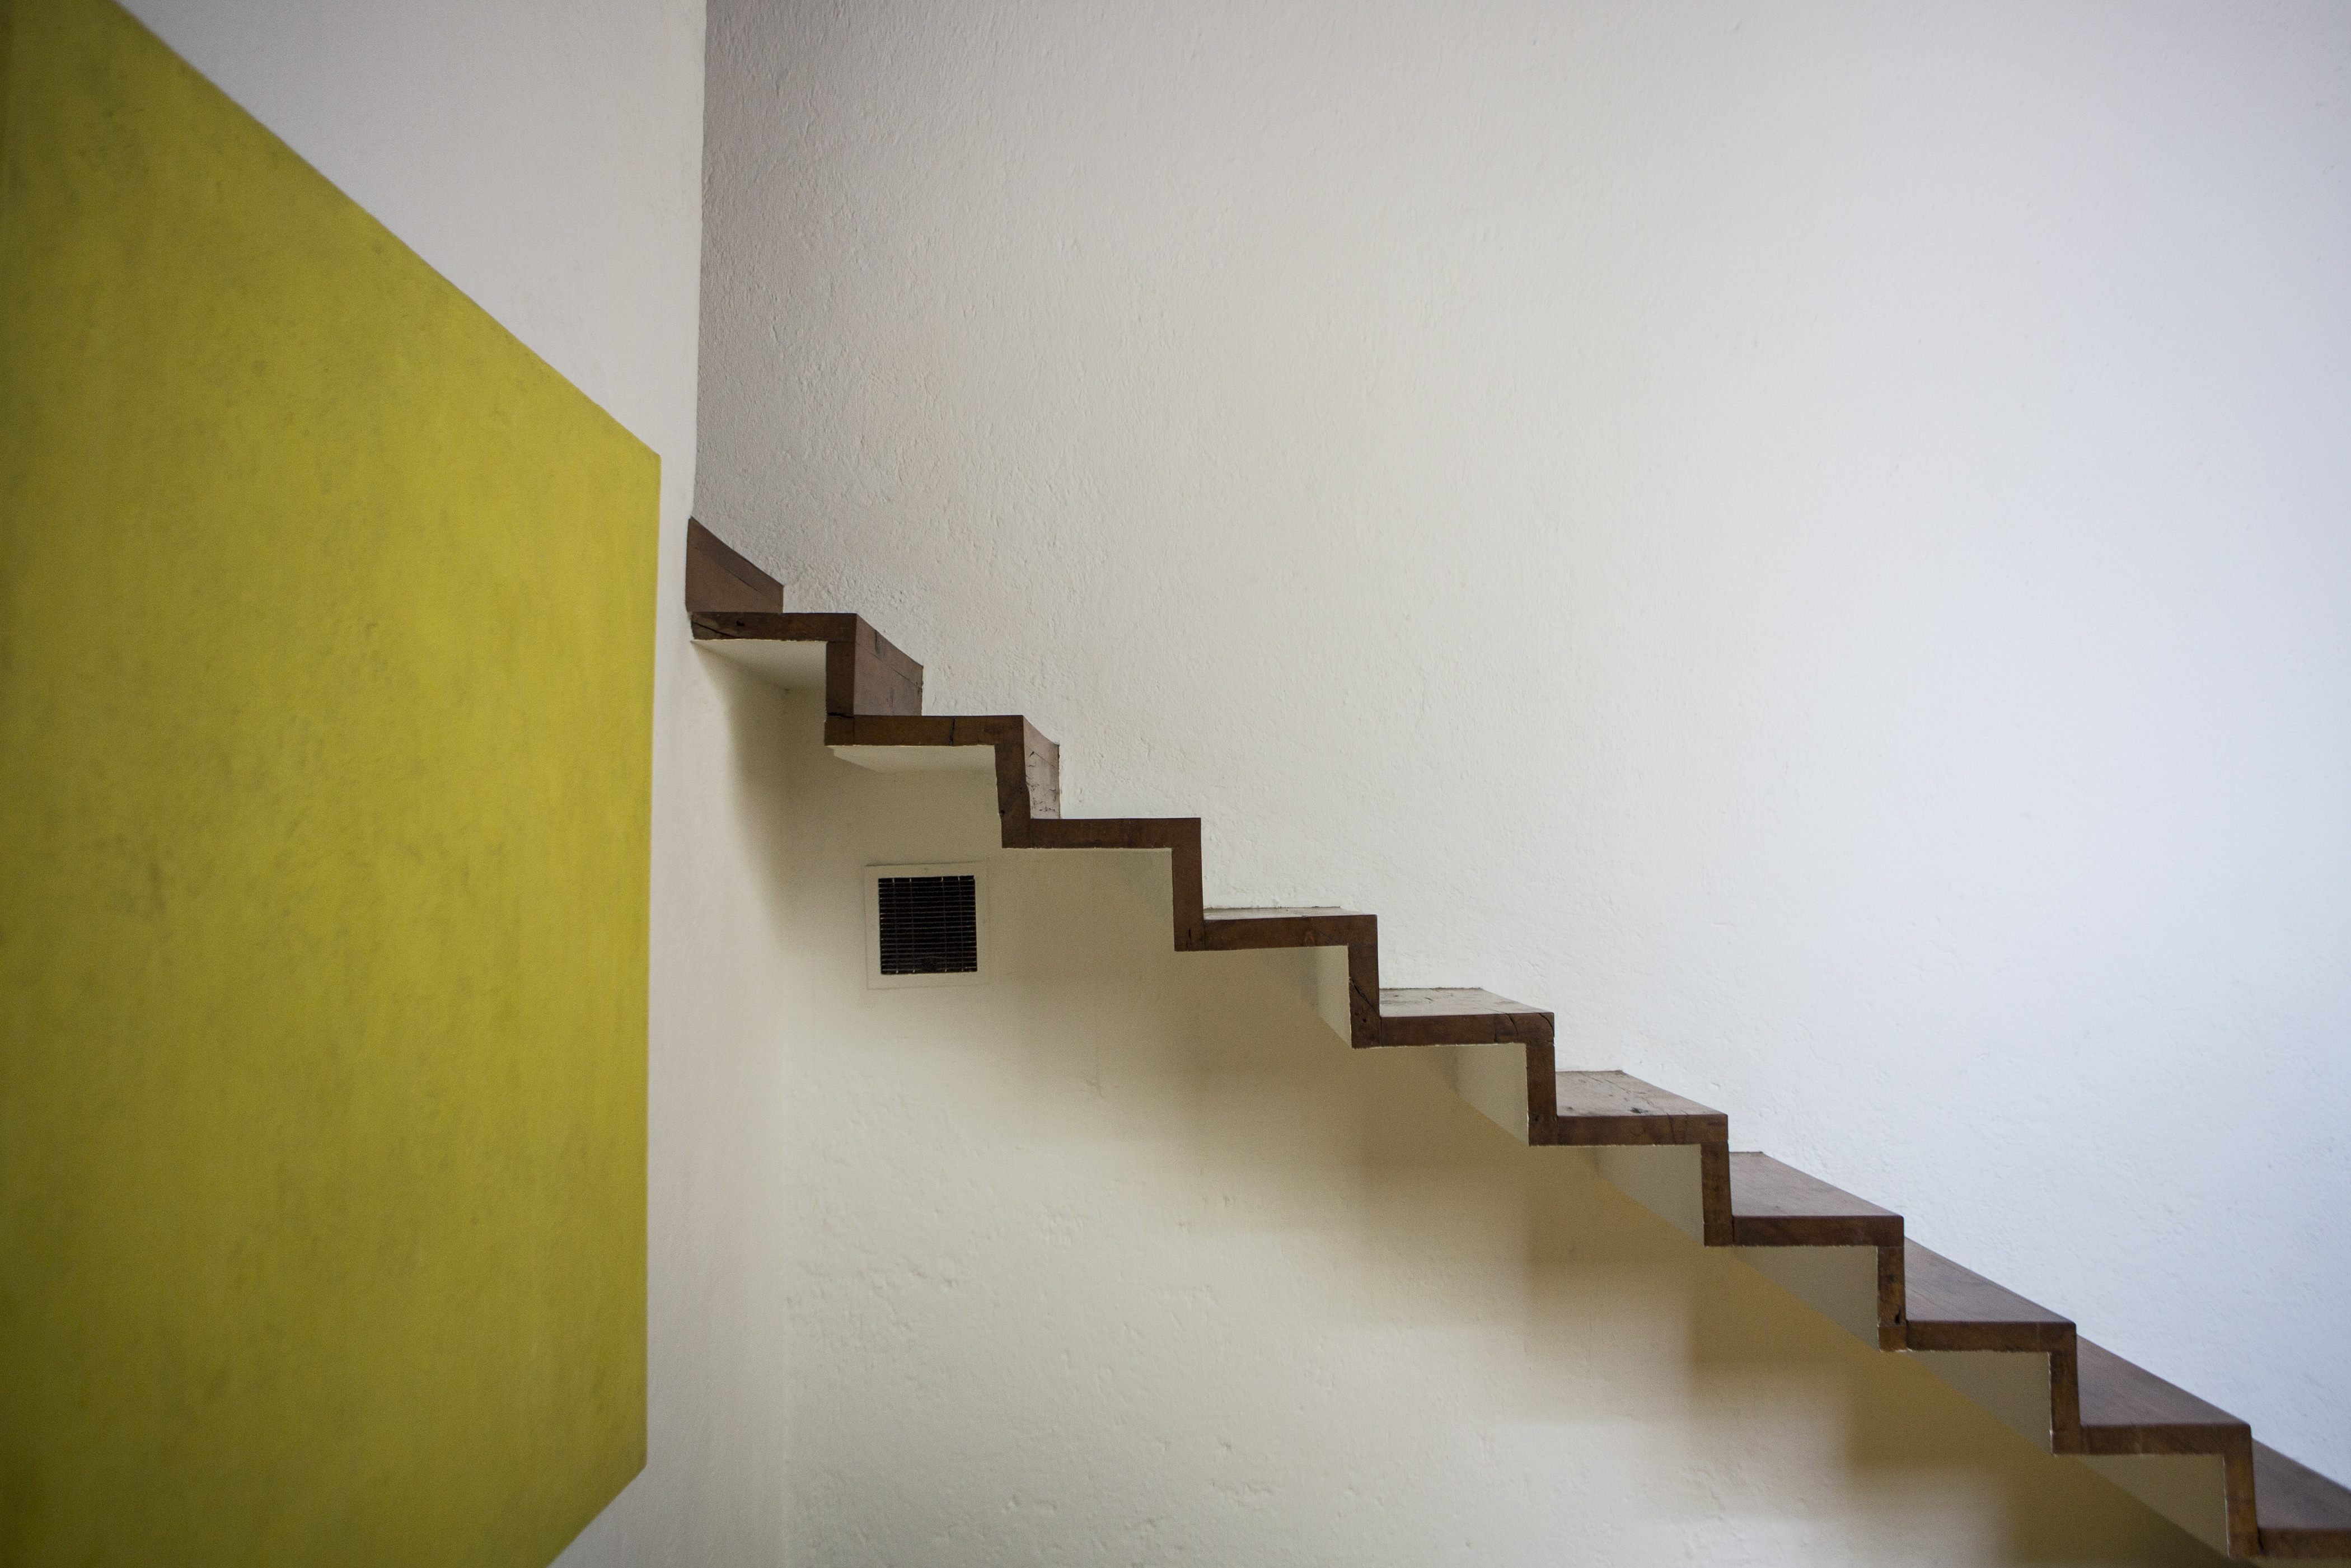 A floating wooden staircase at Casa Luis Barragan, a house the architect built for himself, in Mexico City, May 1, 2014. While some contemporary Mexican architects may affect weariness when the name Luis Barragan arises as the inevitable emblem of the countryþÄôs high culture, his cult abroad has only grown in the years since his death in 1988. (All works by Luis Barragan: Barragan Foundation, Switzerland/Artists Rights Society (ARS), New York. Photos by Adriana Zehbrauskas/The New York Times) — PHOTO MOVED IN ADVANCE AND NOT FOR USE – ONLINE OR IN PRINT – BEFORE JUNE 15, 2014.